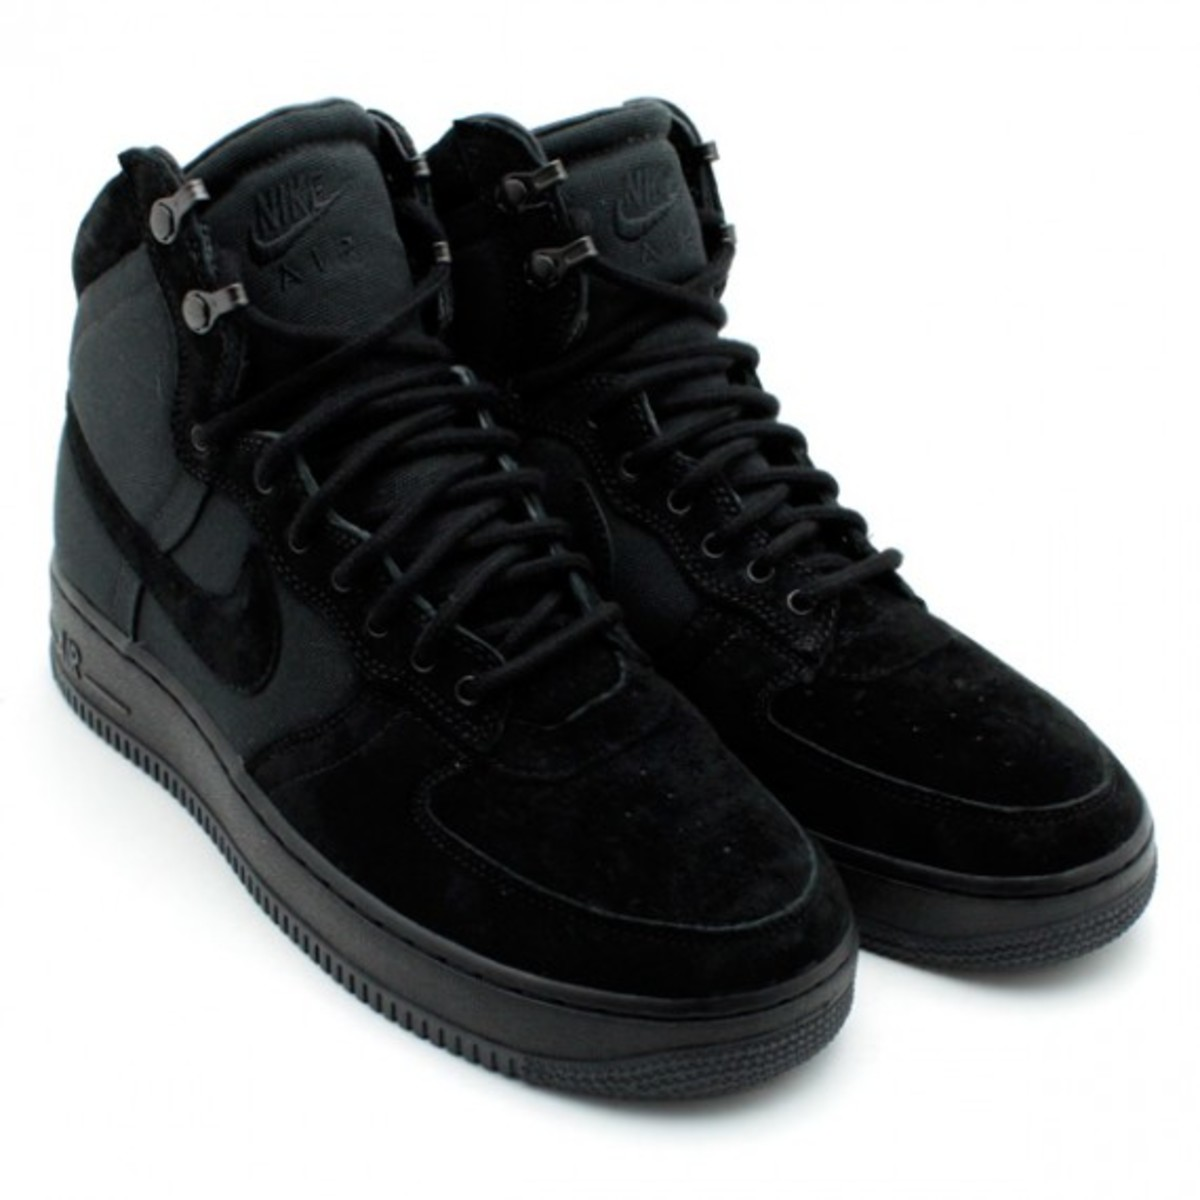 1 Deconstruct Boot Mag Military Air Hi Nike Freshness Force Black rodxWCBe